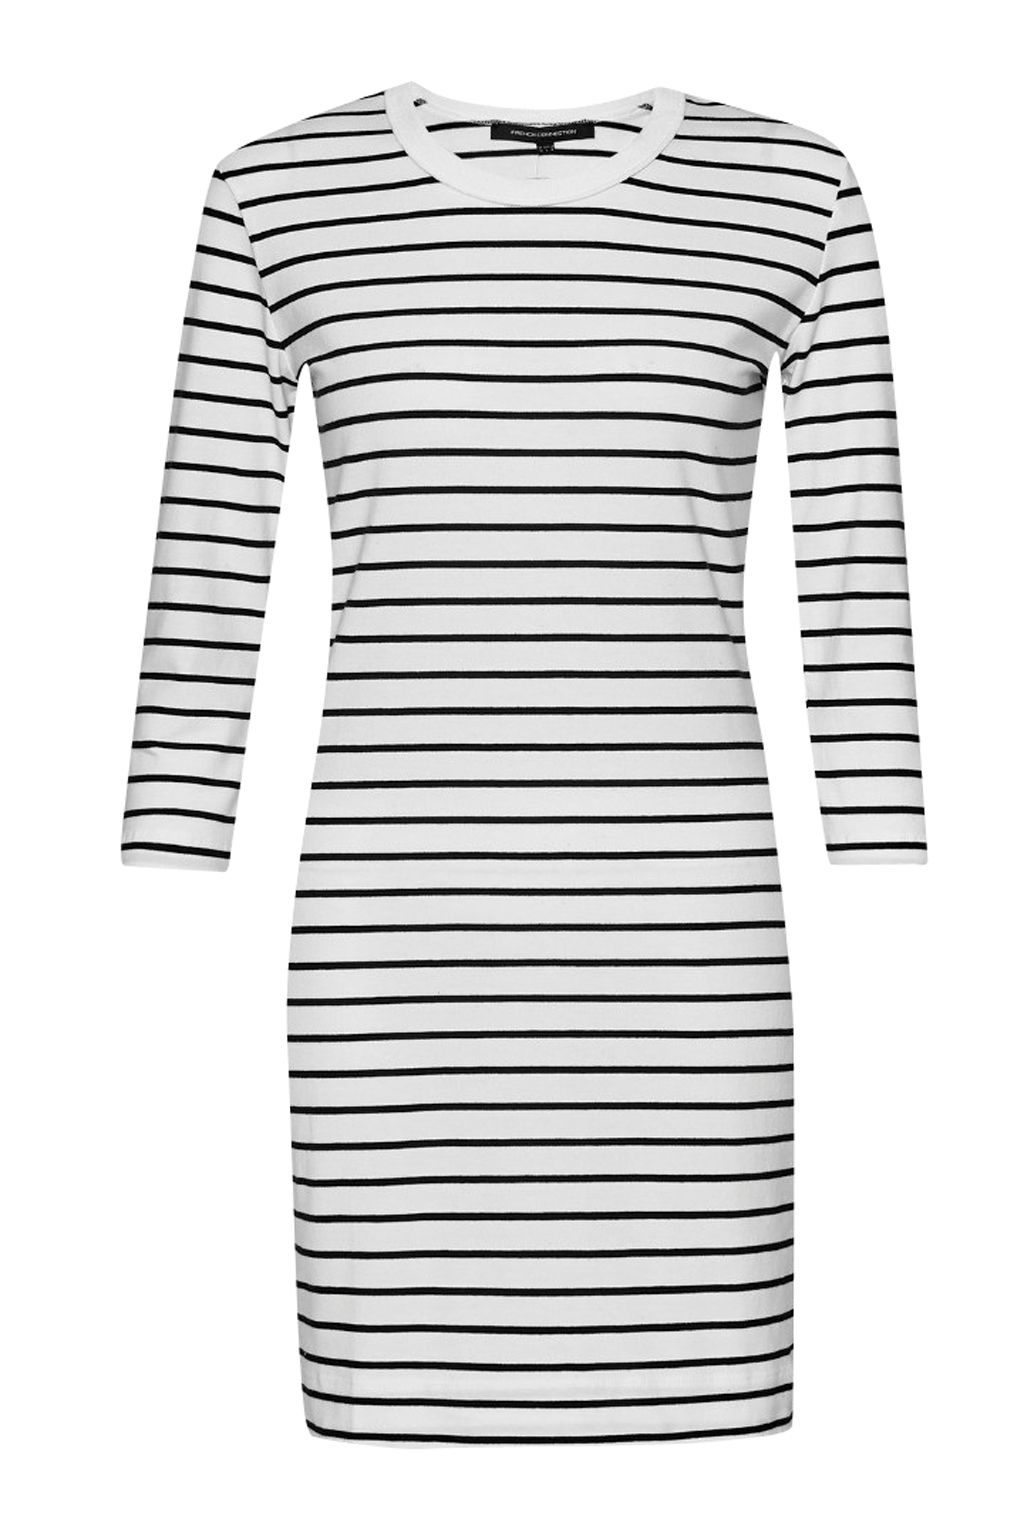 French Connection Tim Tim Striped Dress, White